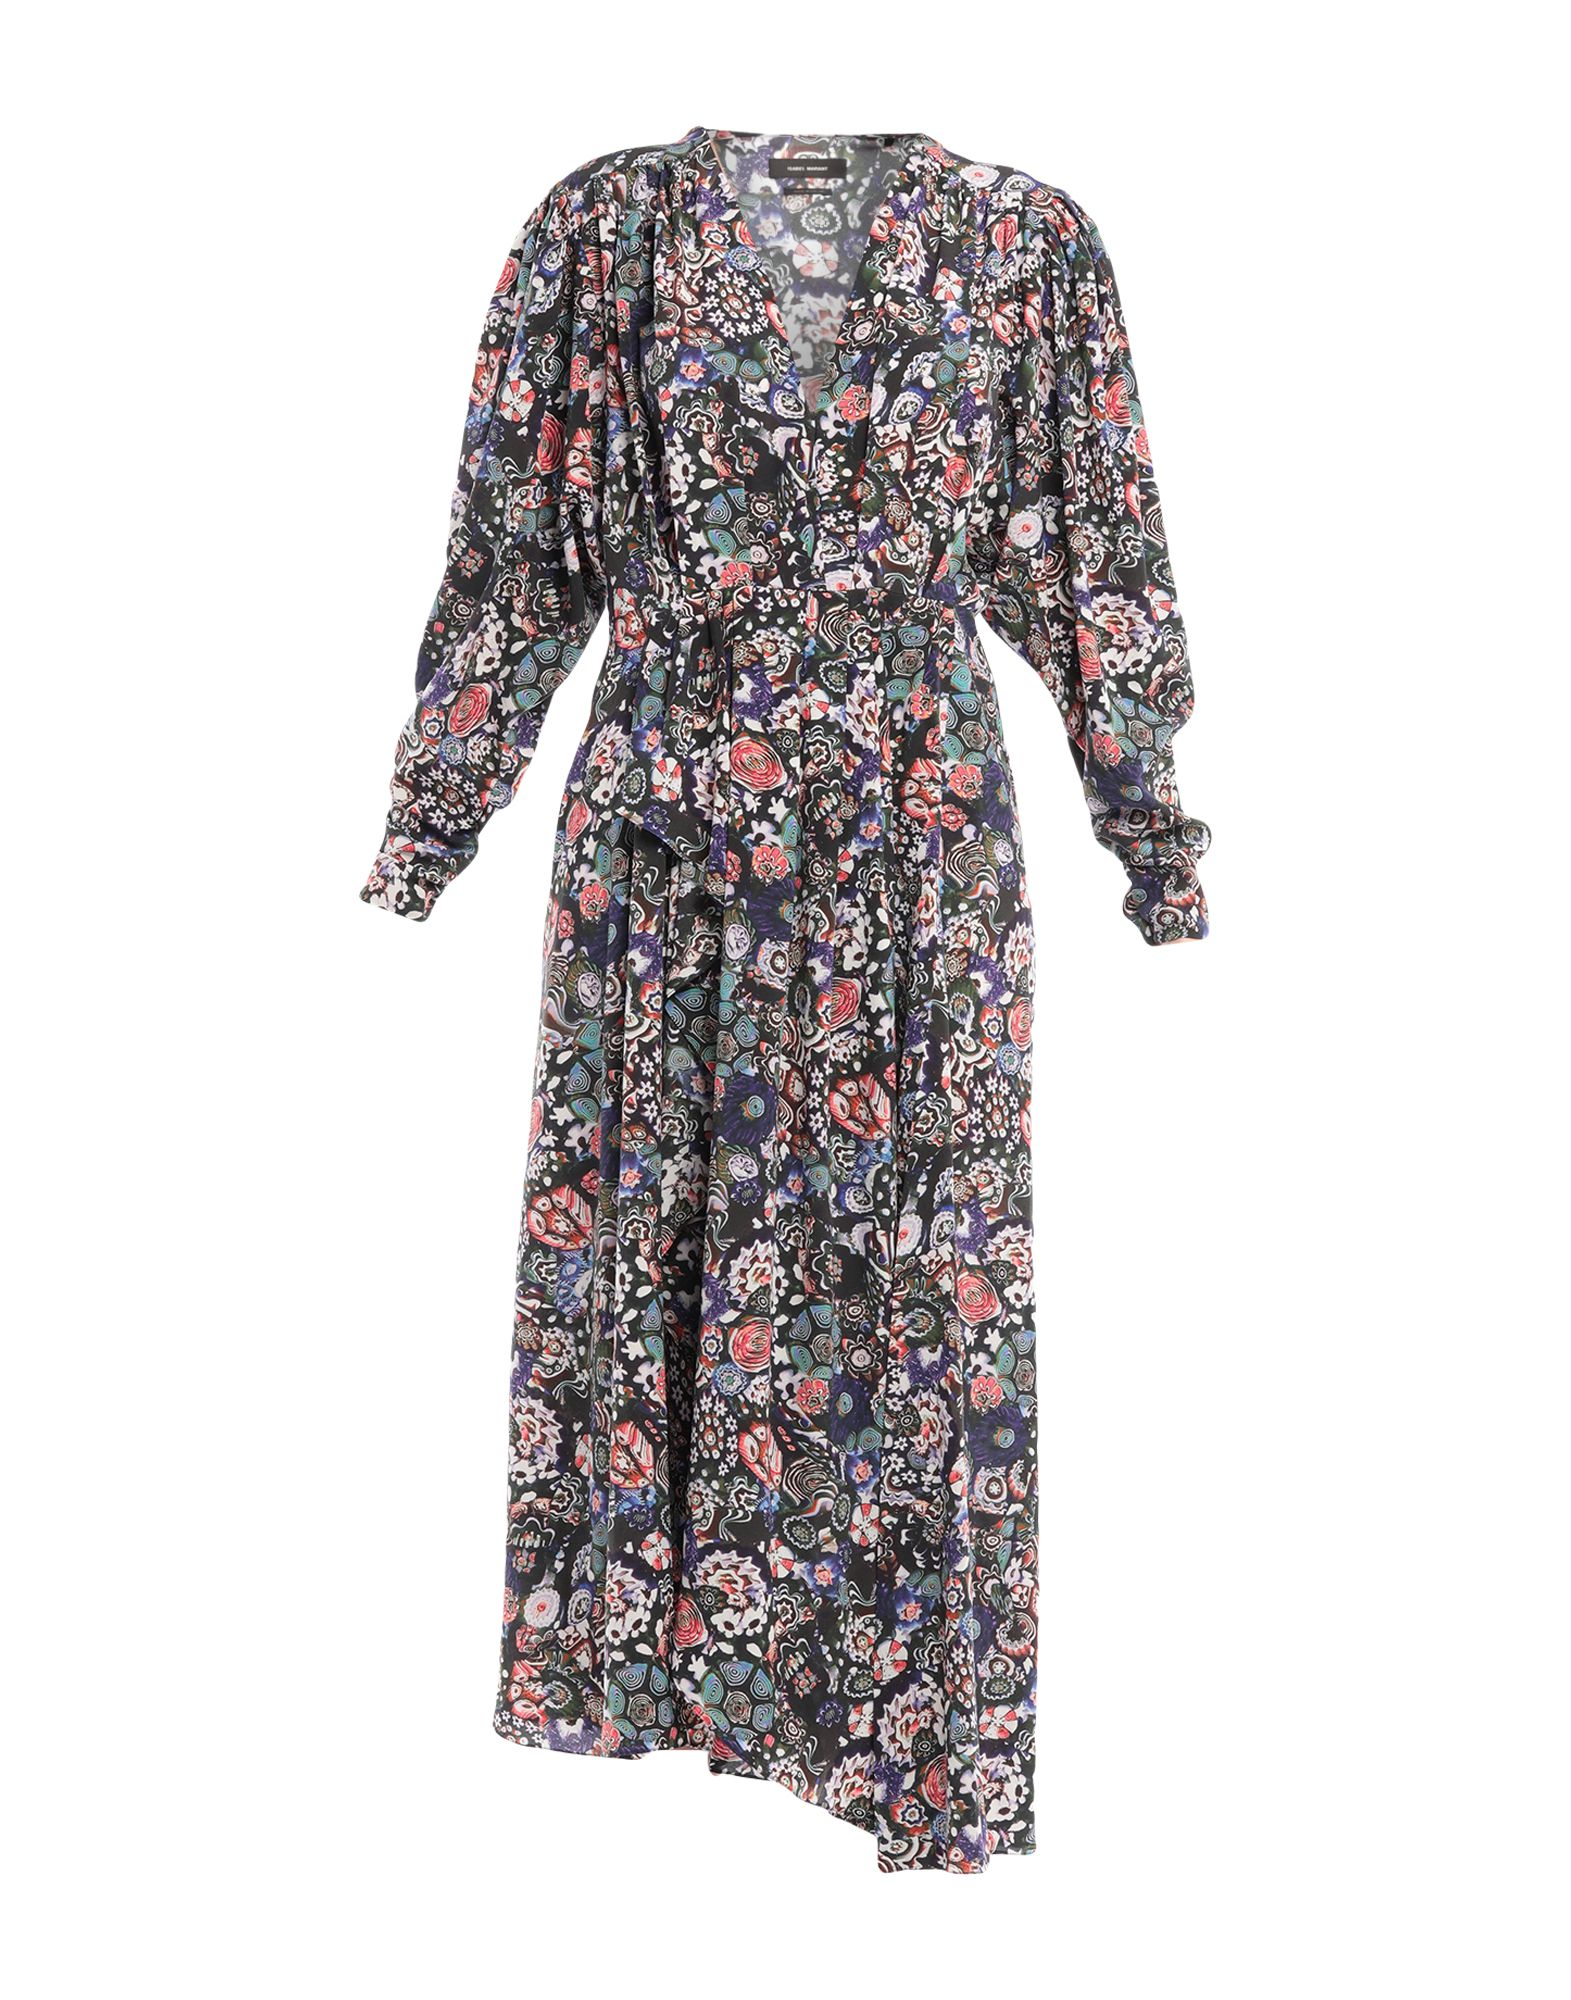 ISABEL MARANT Long dresses. crepe, folds, floral design, v-neck, 3/4 length sleeves, no pockets, side closure, zipper closure, unlined, stretch. 91% Silk, 9% Elastane